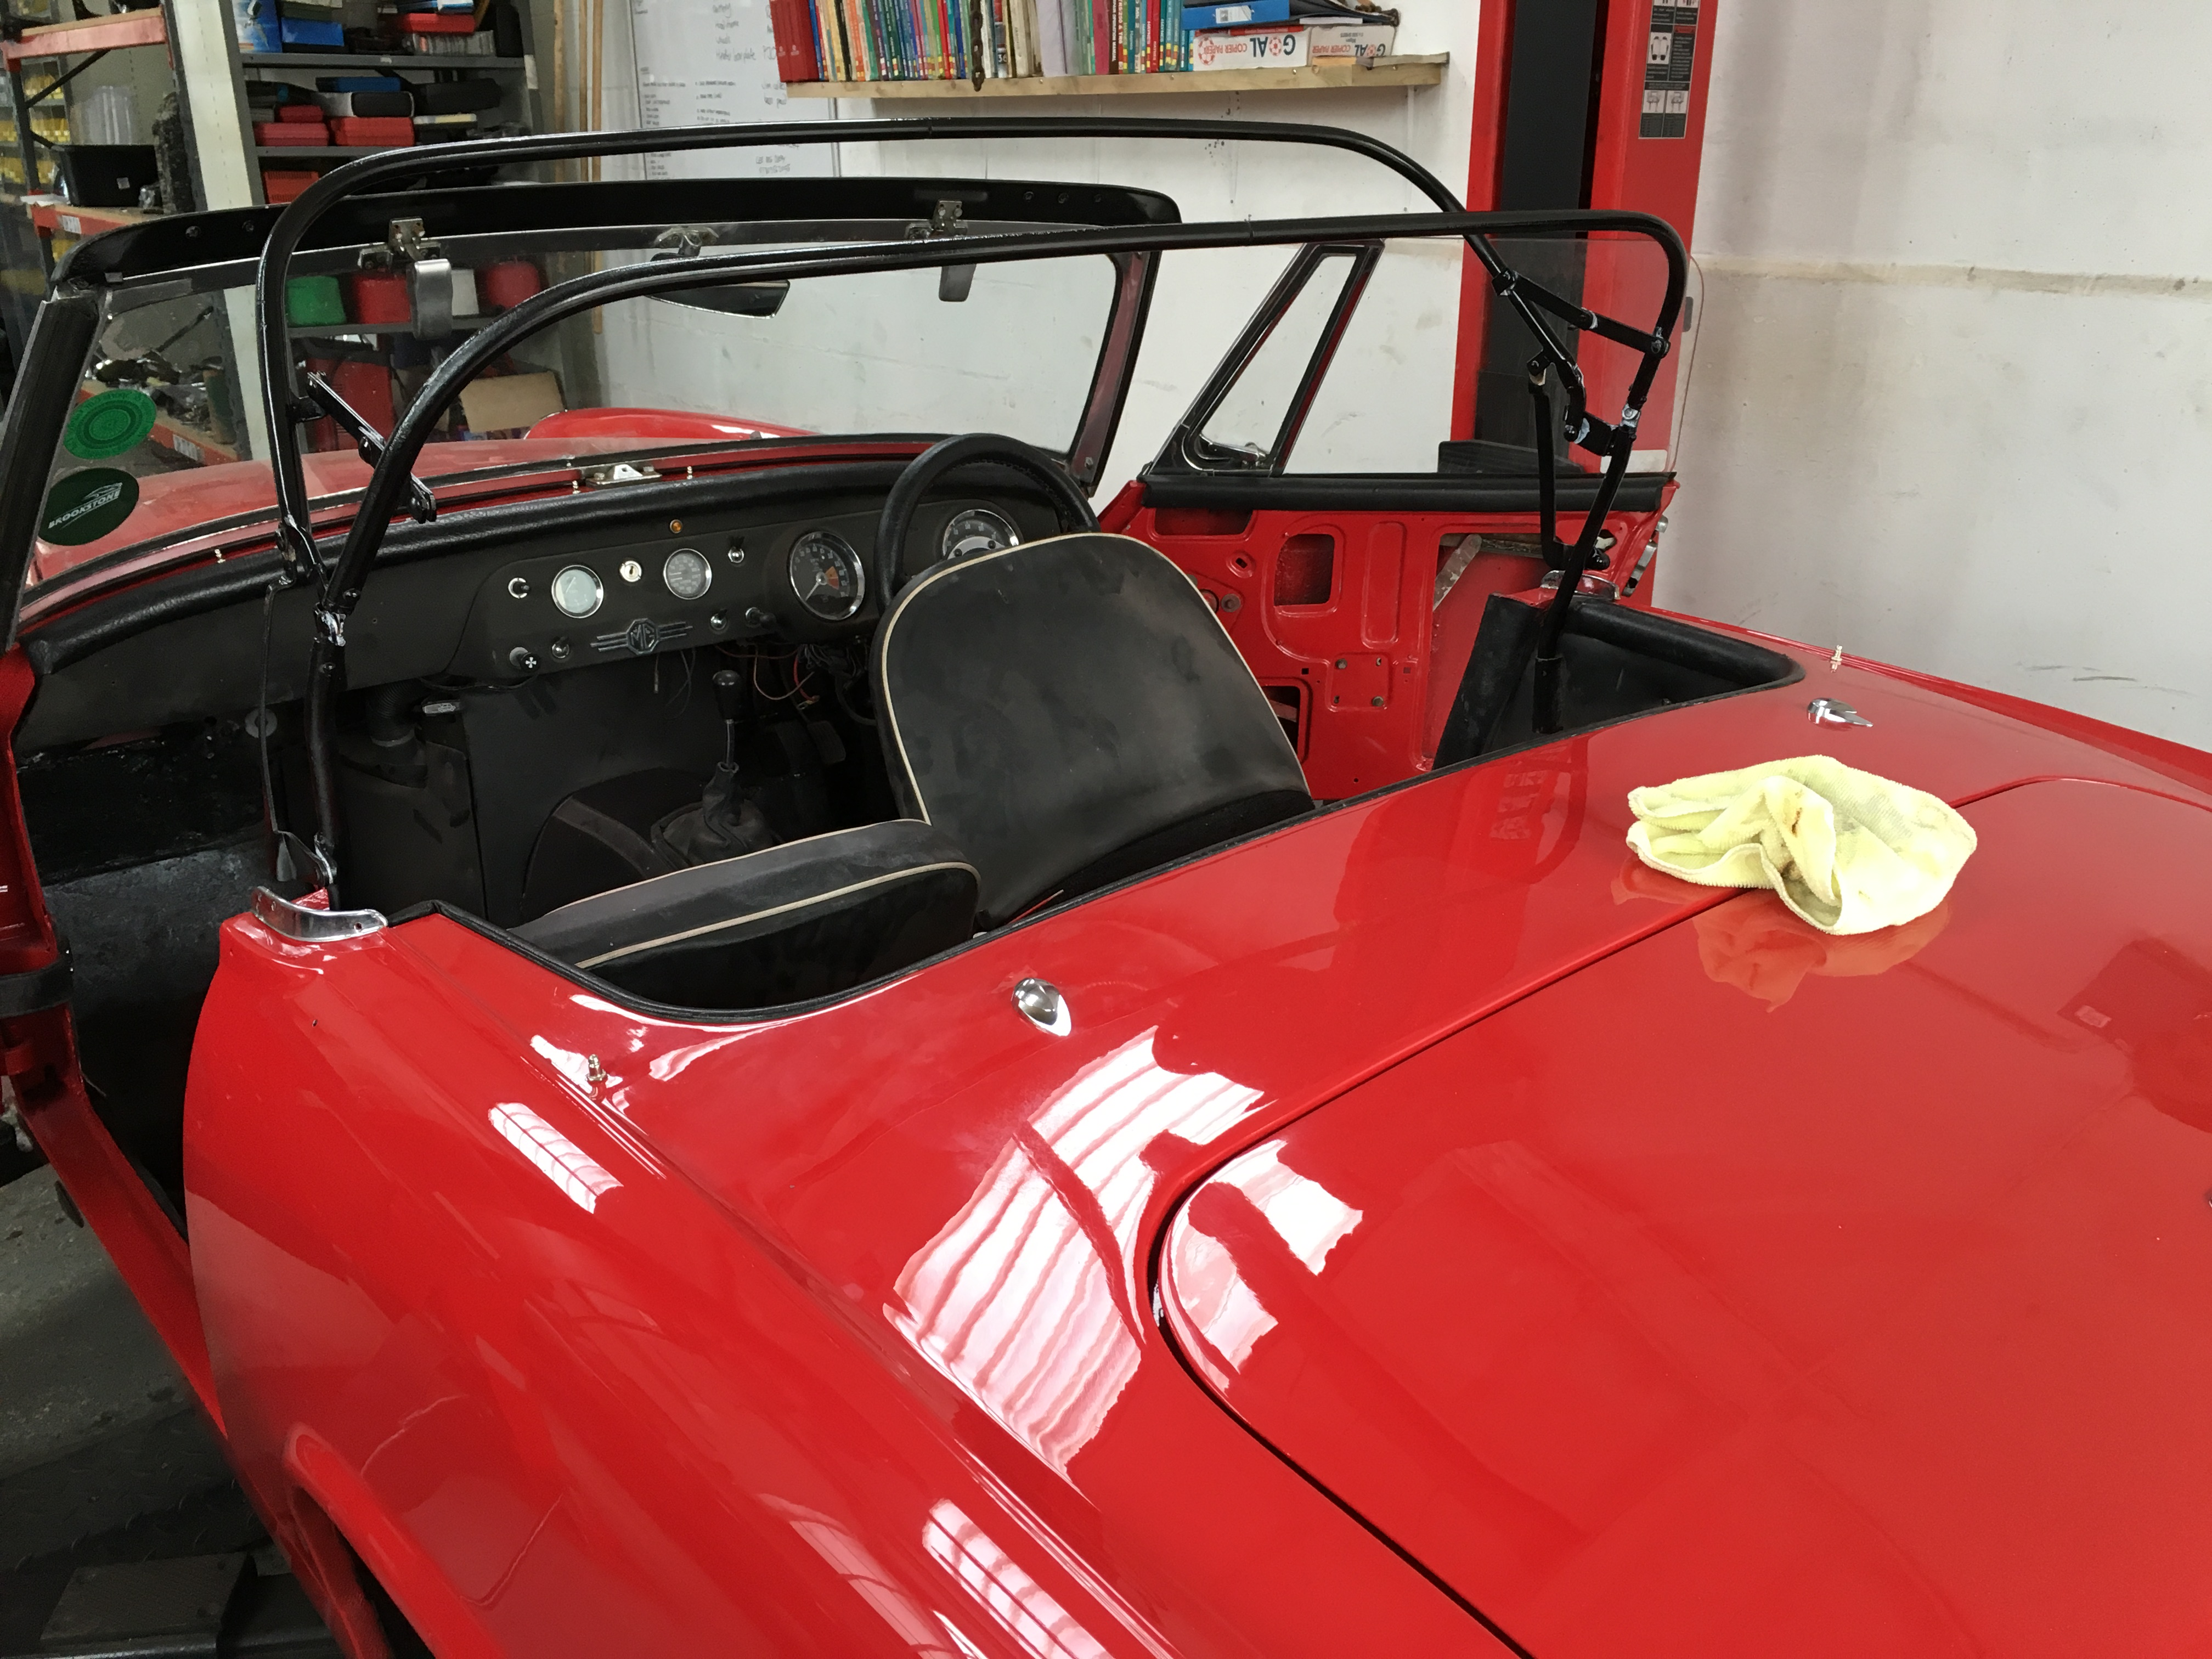 1966 MG Midget - Fitting the roof